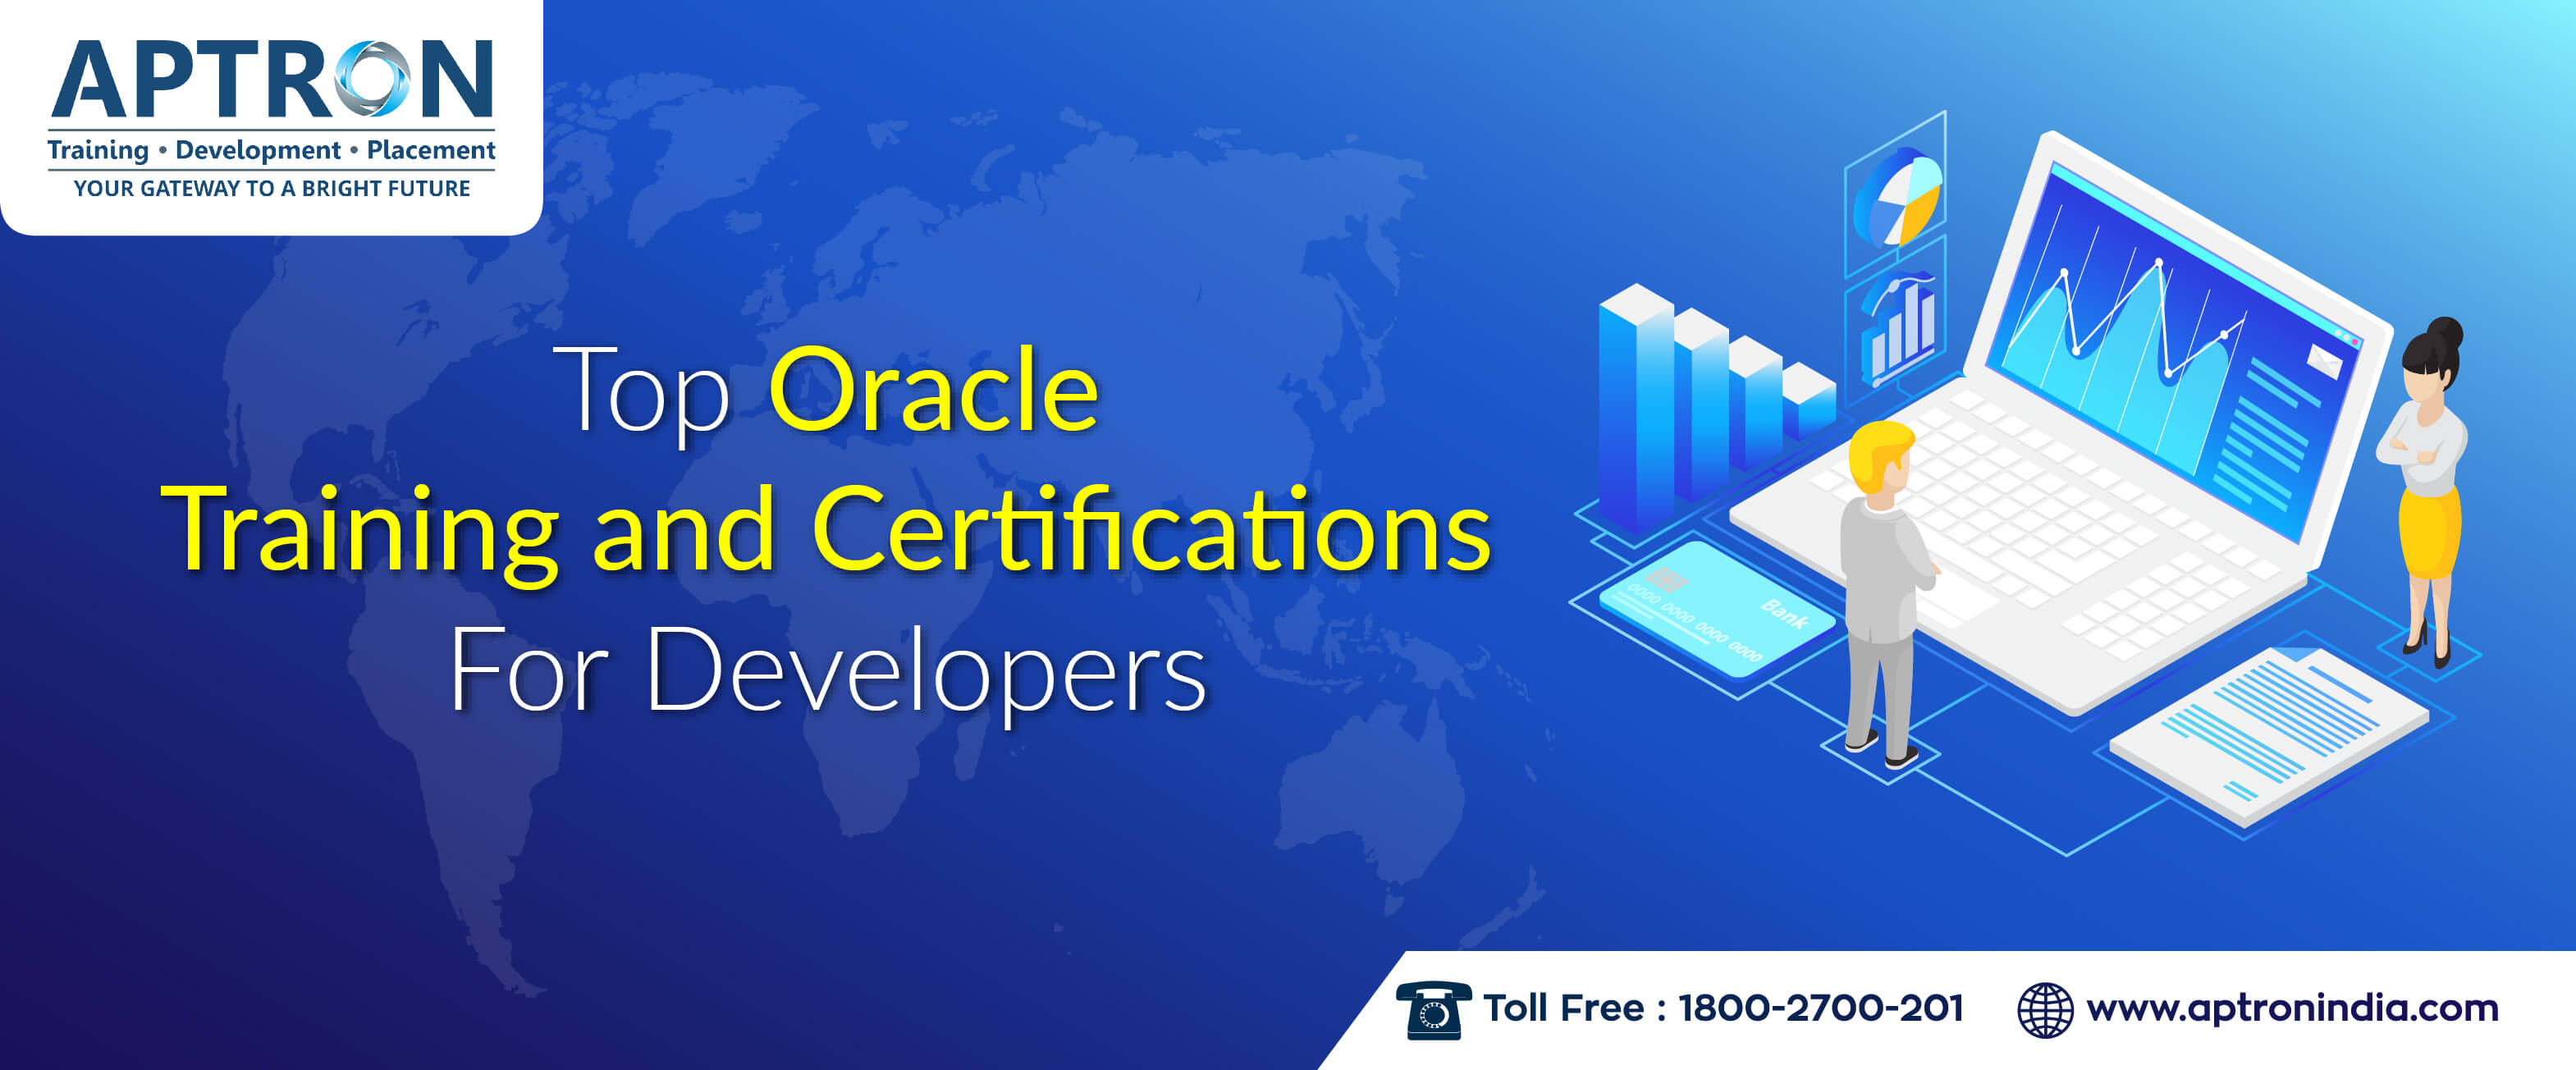 Top Oracle Training and Certifications for Developers